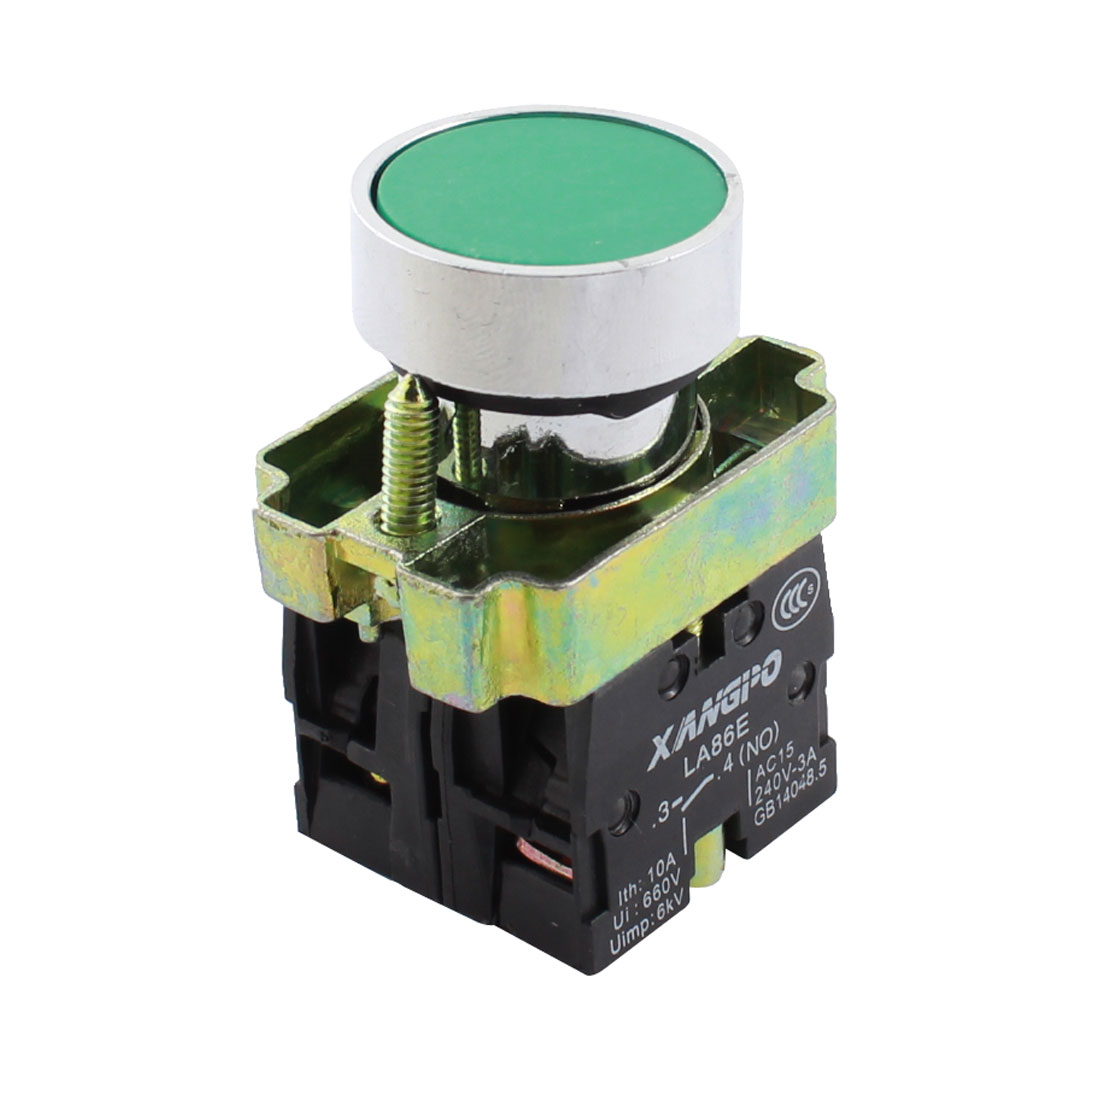 AC240V 3A NC + NO Green Head Momentary Round Push Button Switch LA86E